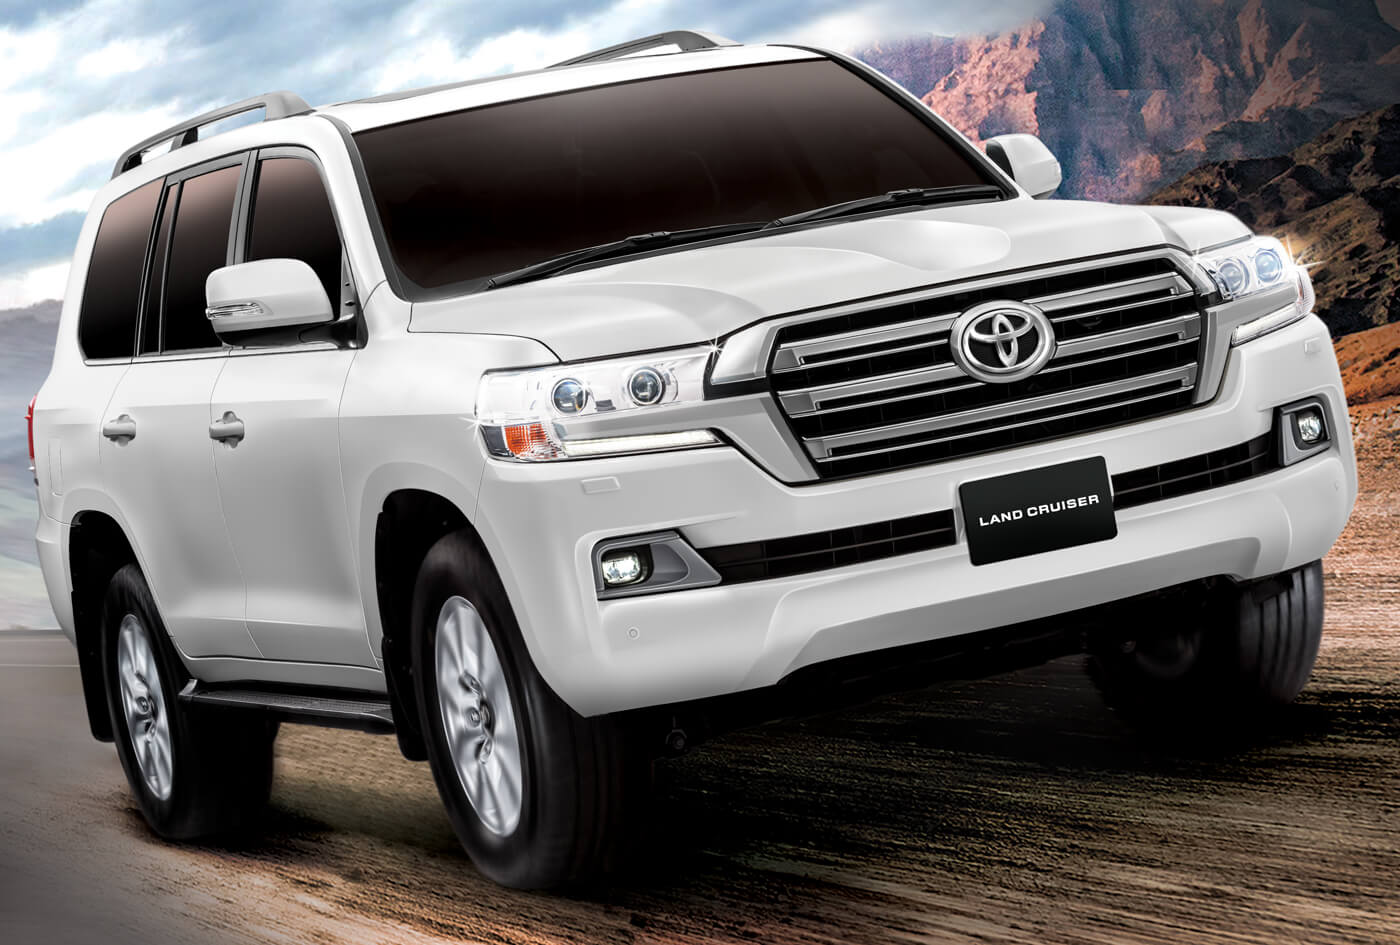 Toyota Land Cruiser 2021 Prices in Pakistan Specifications, Features